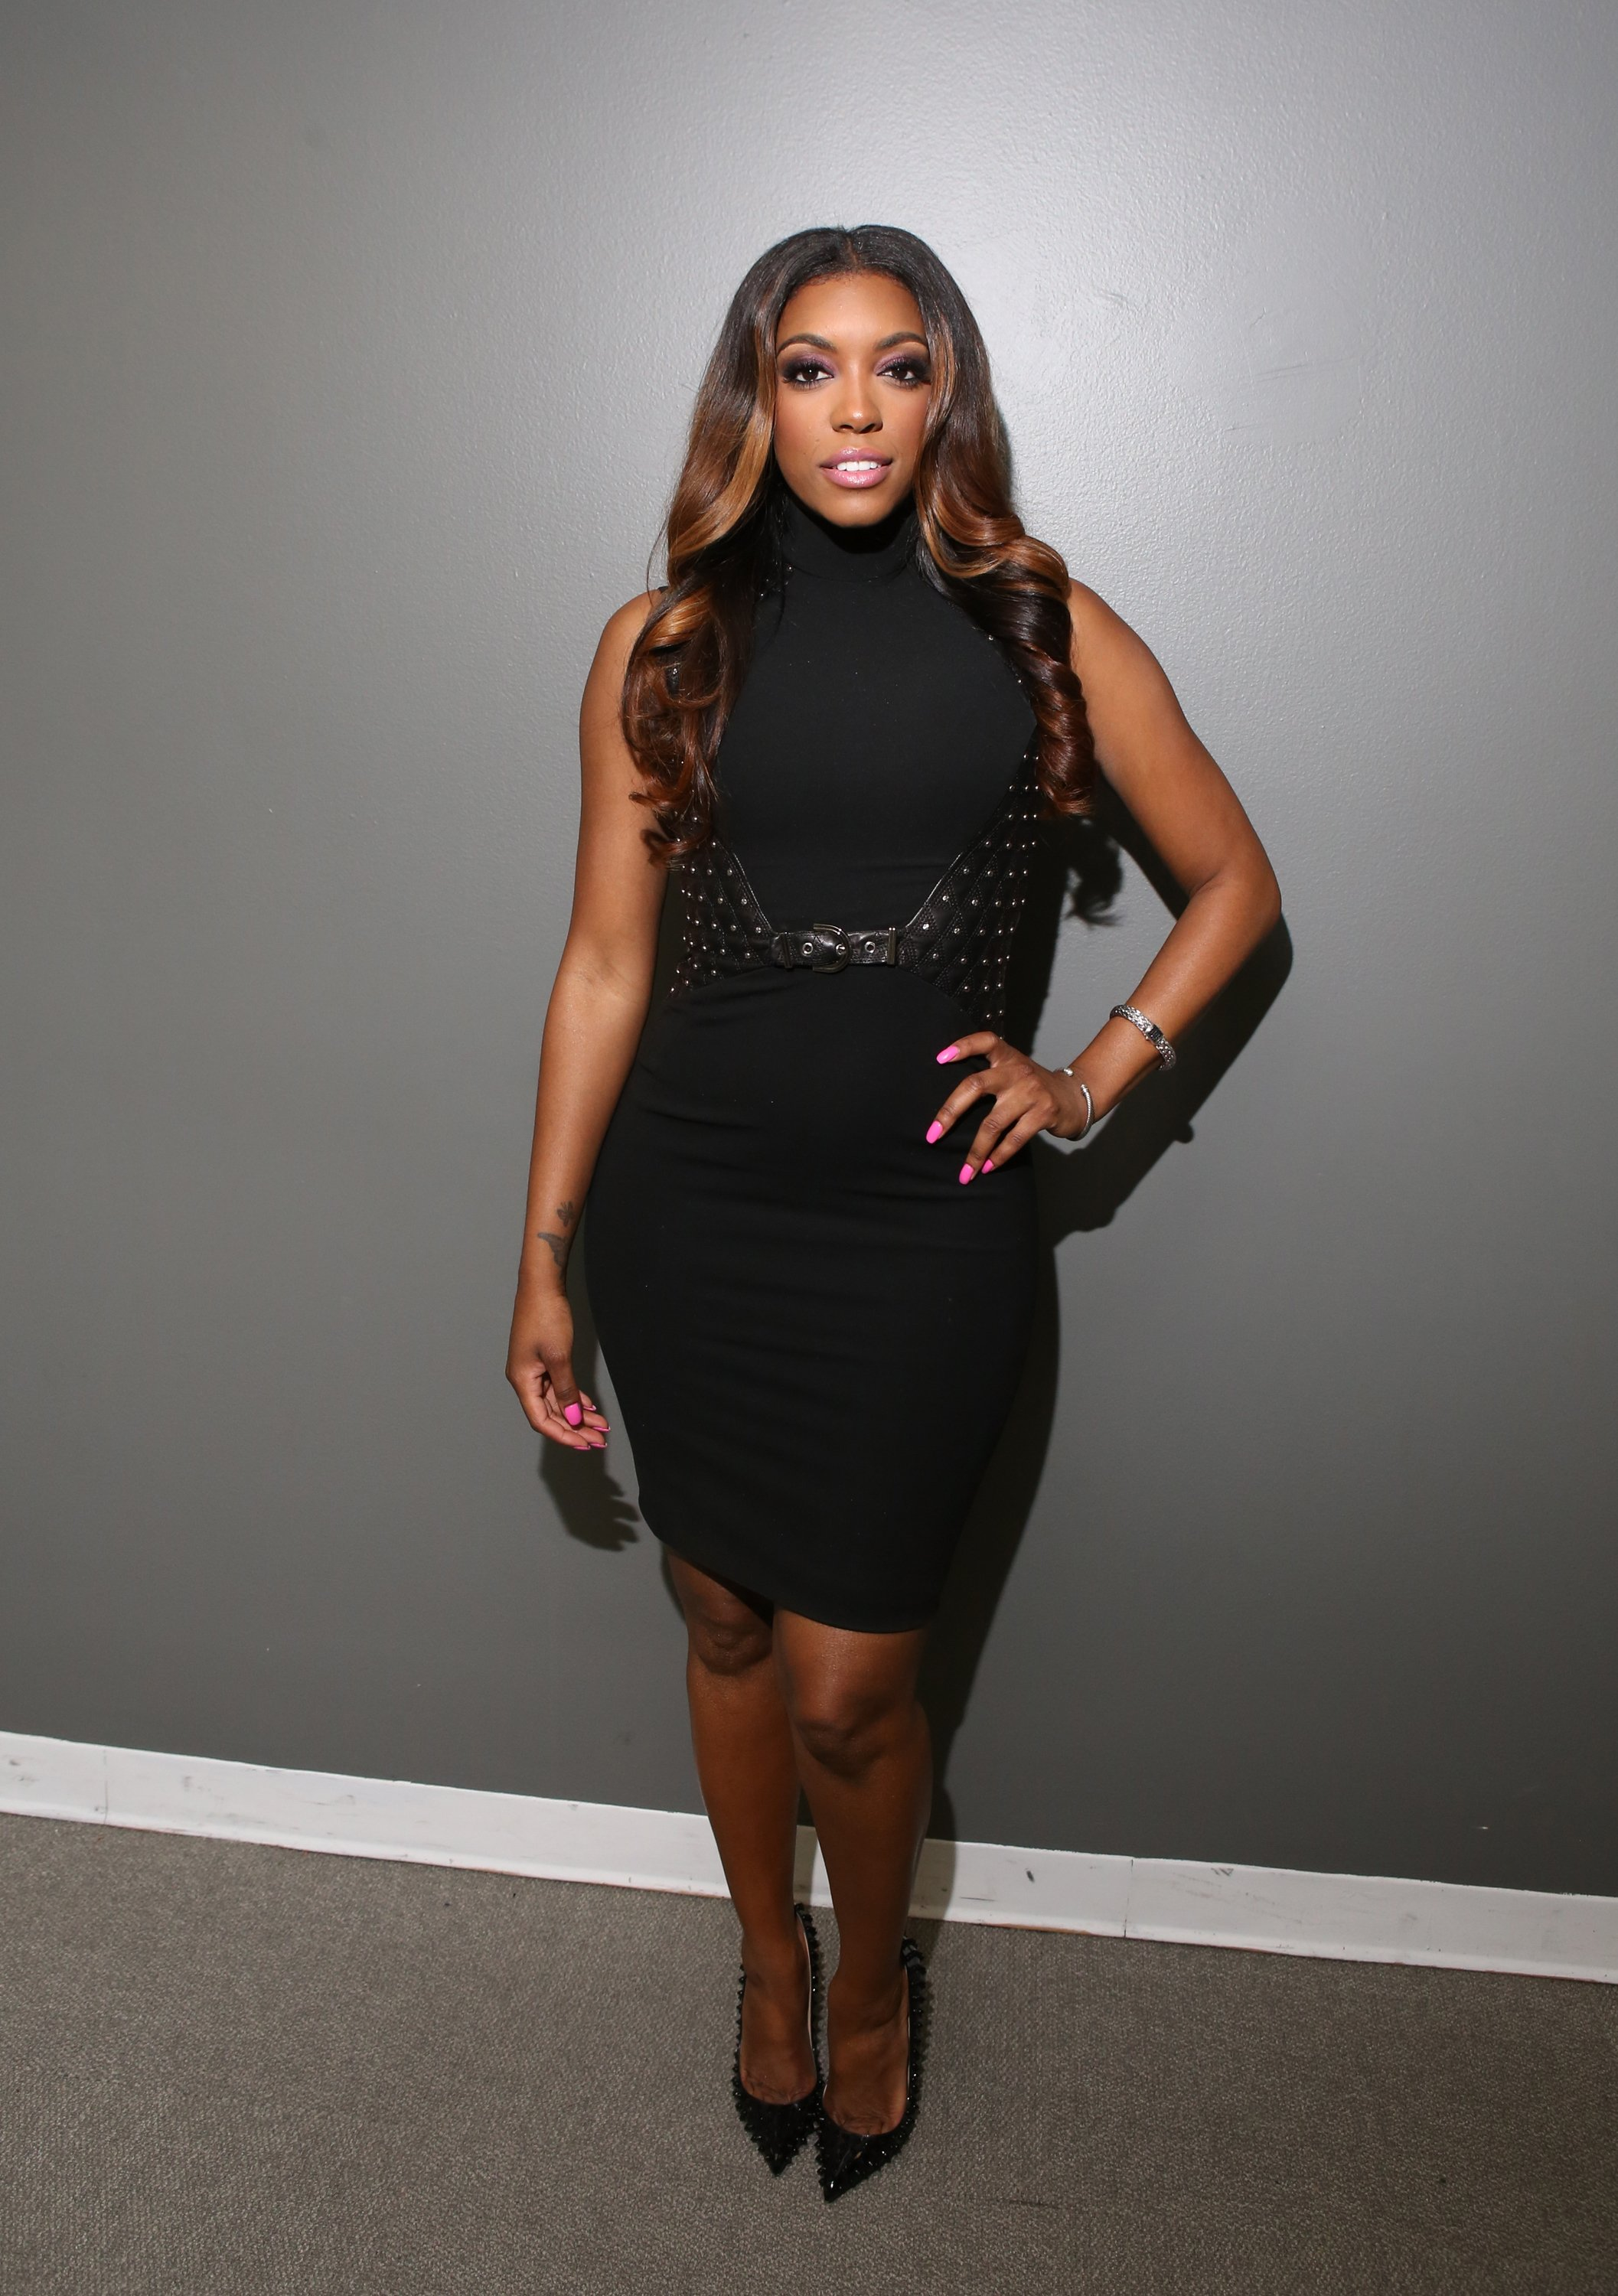 TV personality Porsha Williams visits 106 & Park at BET studio   Photo: Getty Images